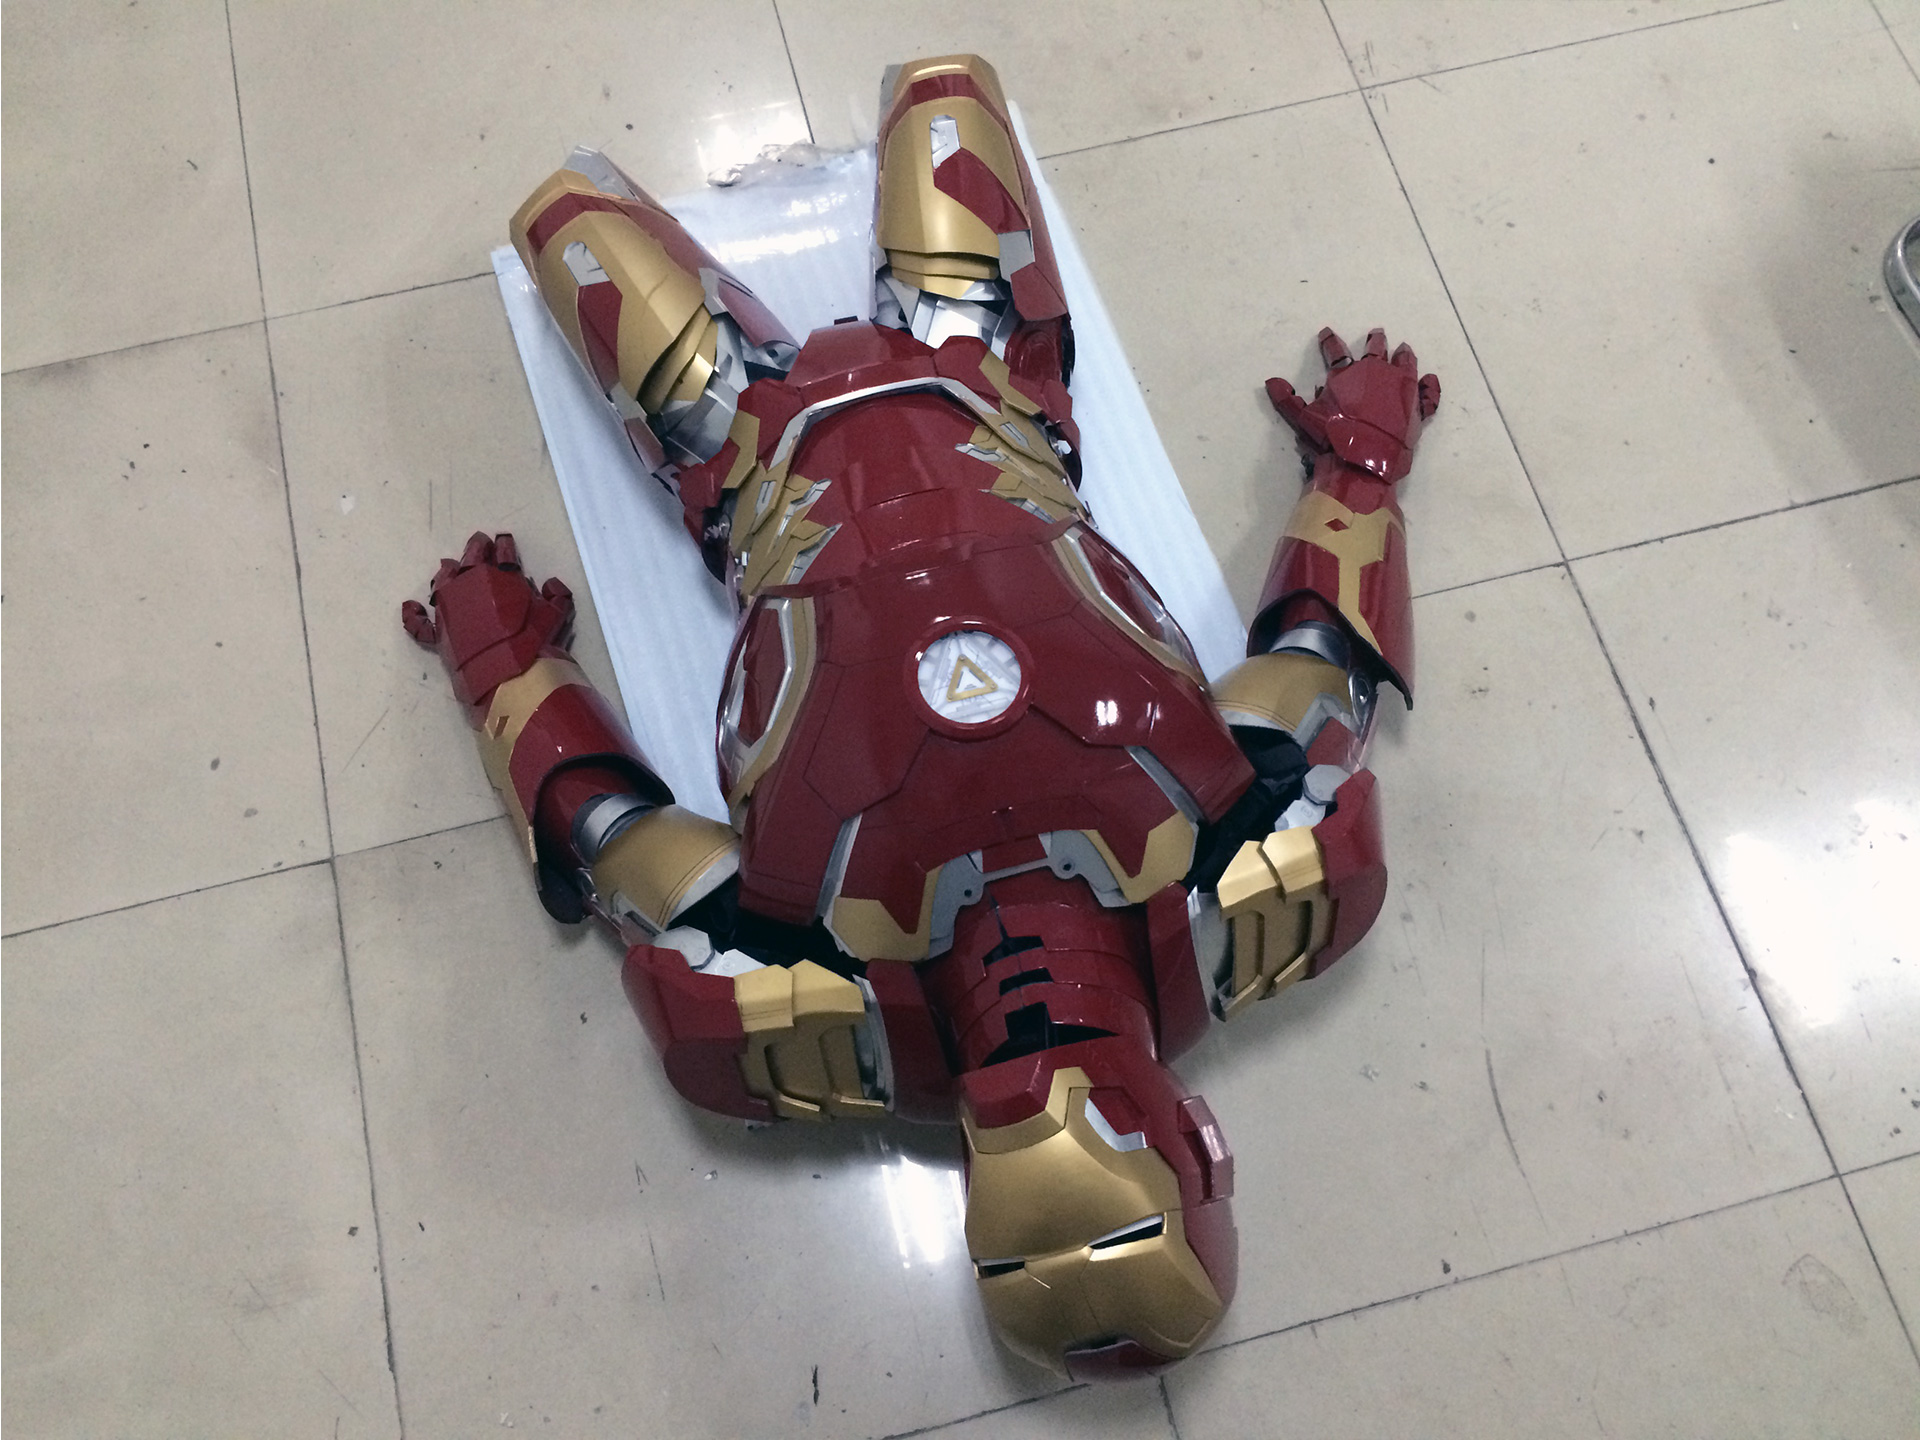 Wearable Iron Man Mark 43 (XLIII) suit costume prototype thigh 3